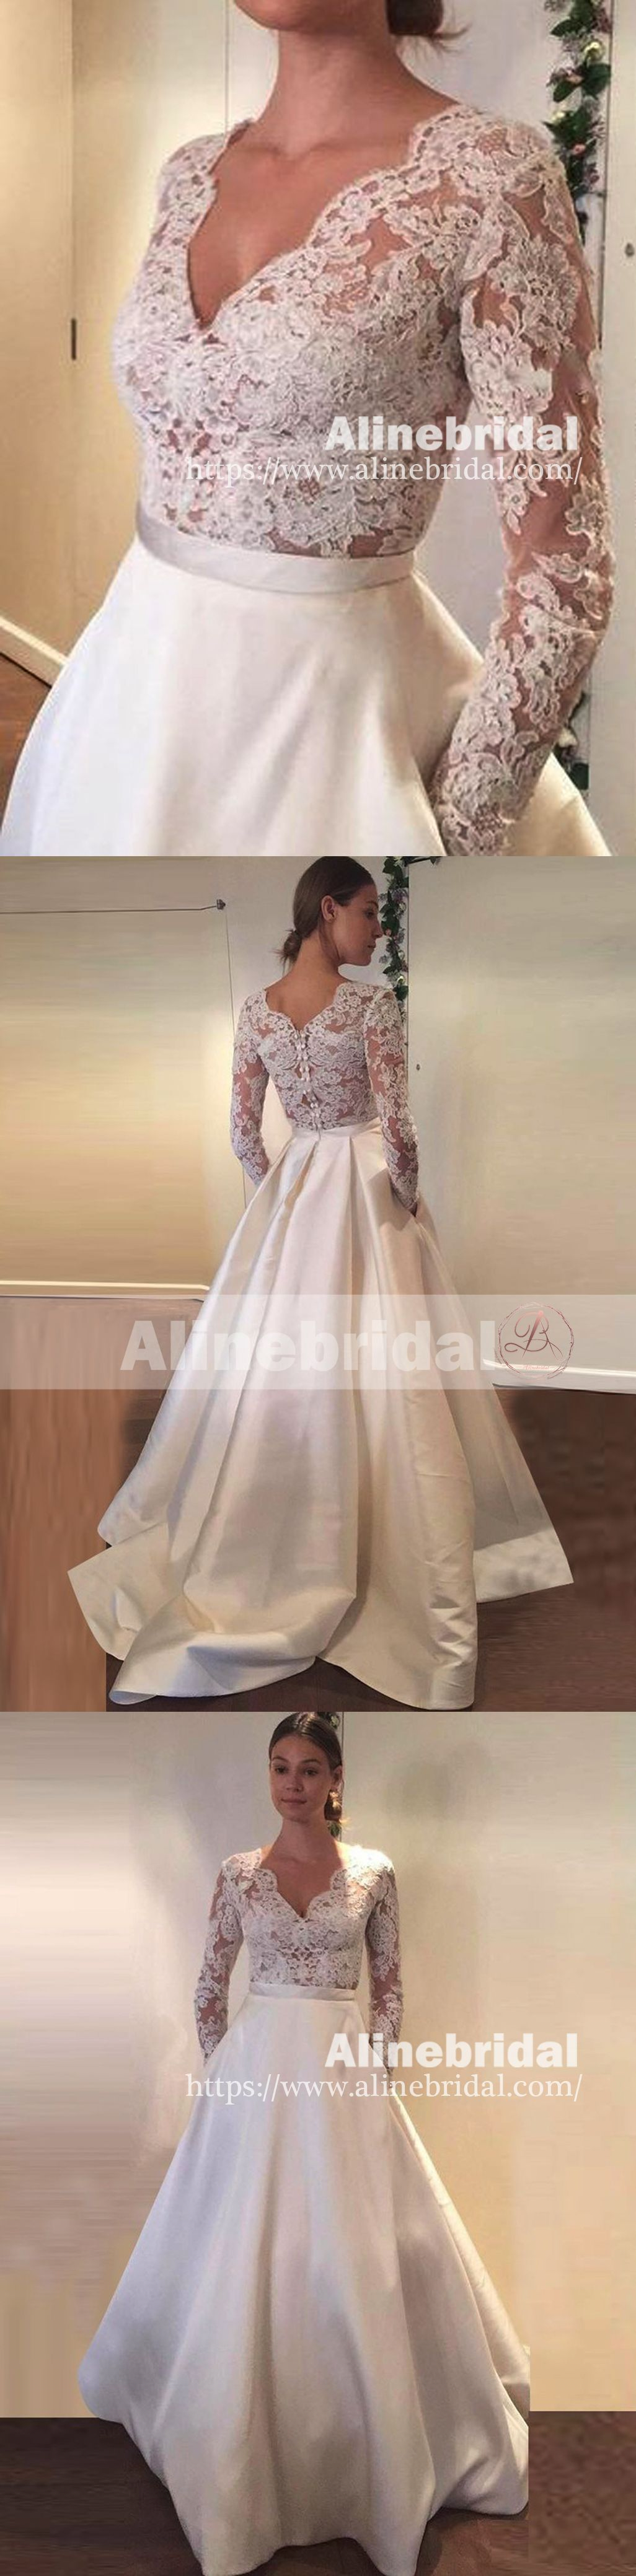 Vintage lace top ivory satin long sleeves wedding dresses with